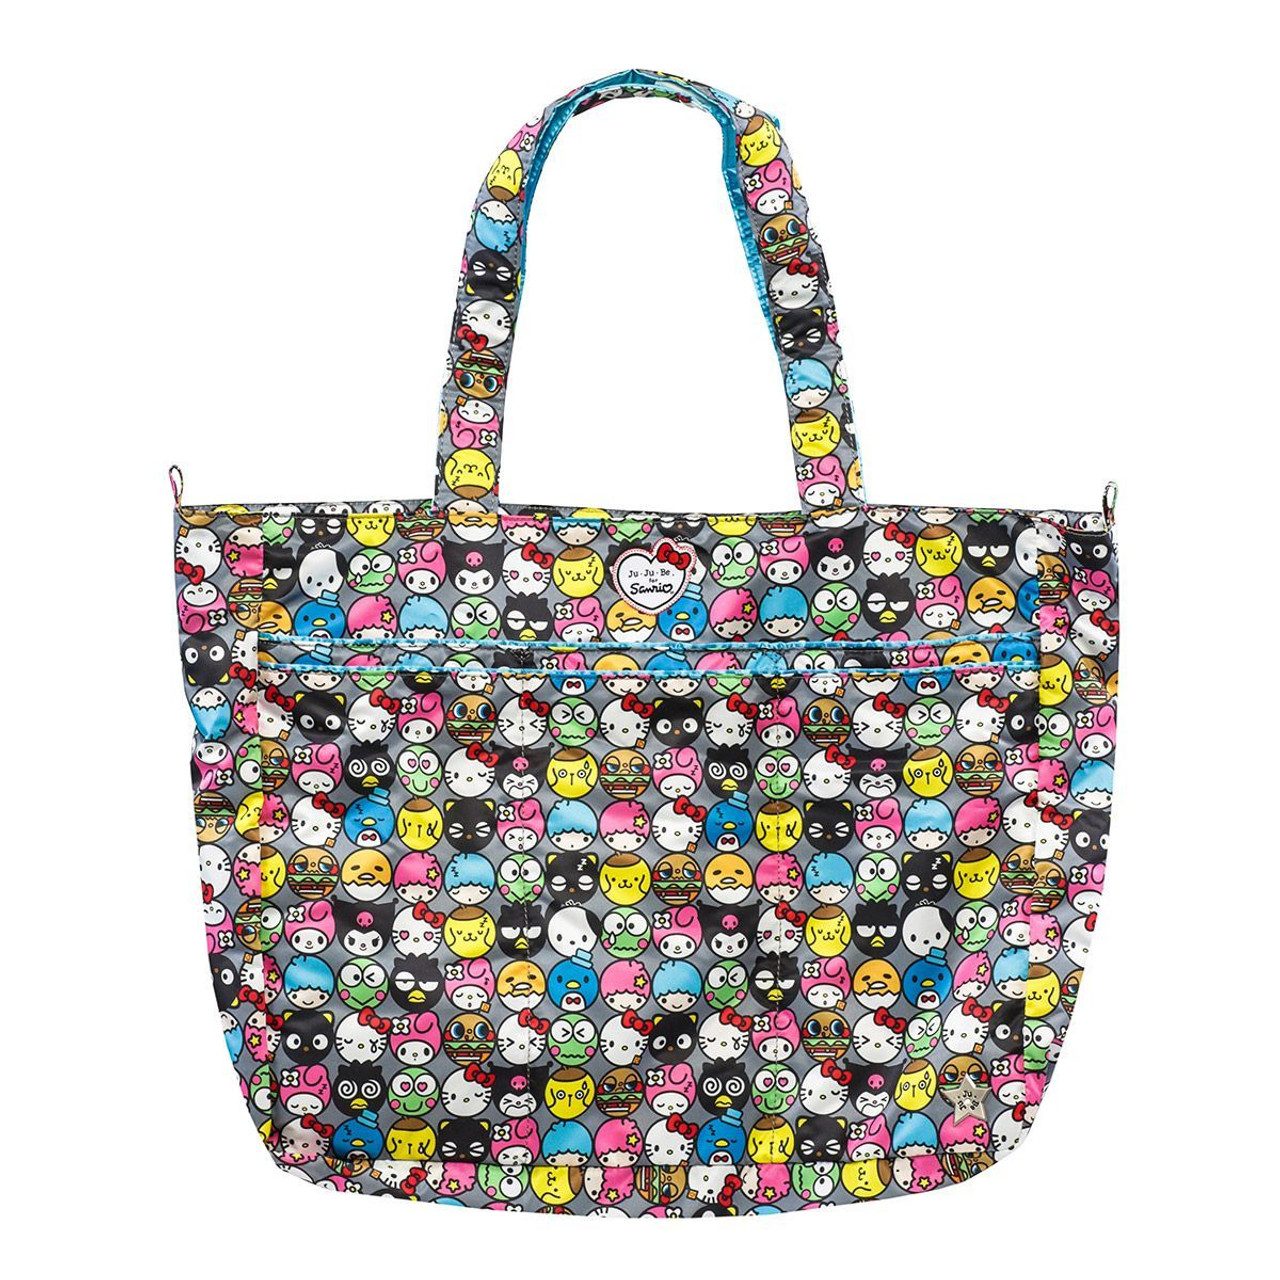 97ed6b430f06 Ju-Ju-Be Sanrio Hello Kitty Super Be Tote Bag Purse Baby Bag 14FF02HK-HFR -  Fearless Apparel